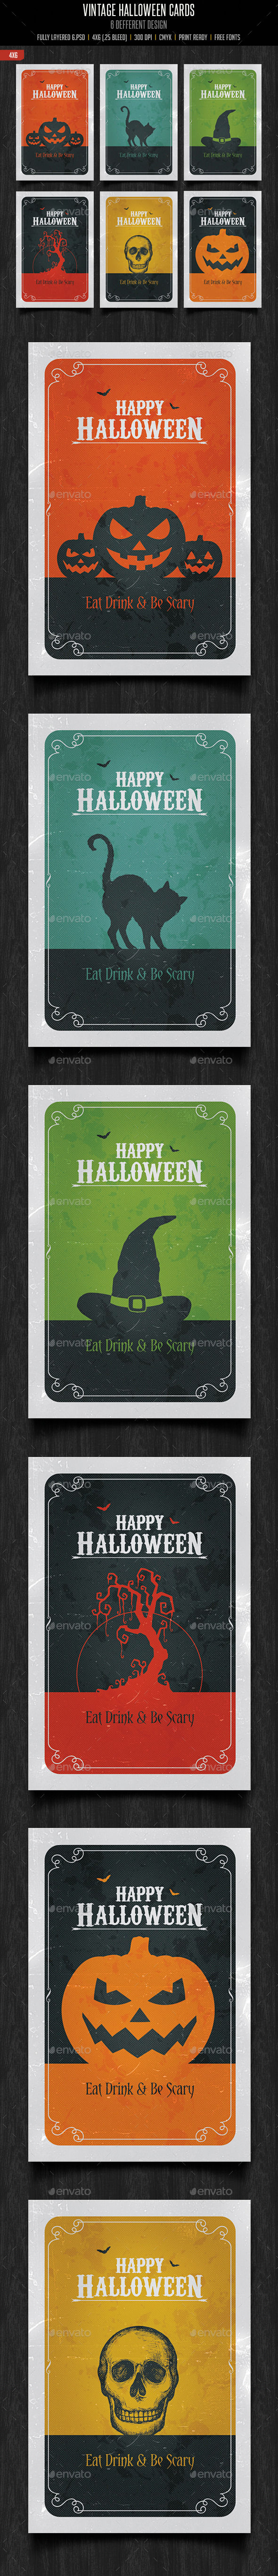 Vintage Halloween Cards by Creativeartx (Halloween party flyer)